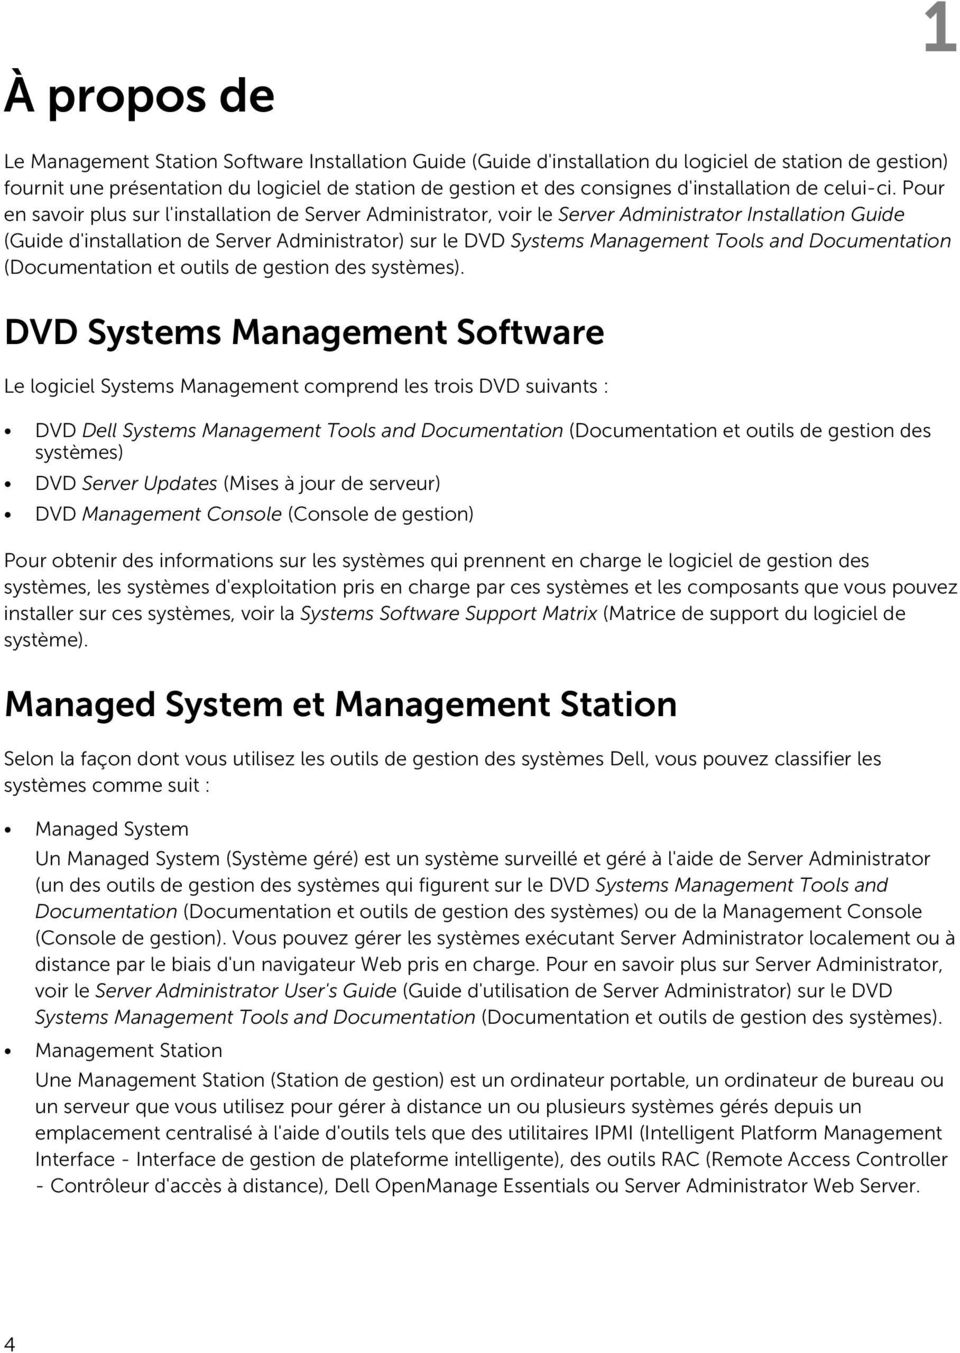 Pour en savoir plus sur l'installation de Server Administrator, voir le Server Administrator Installation Guide (Guide d'installation de Server Administrator) sur le DVD Systems Management Tools and